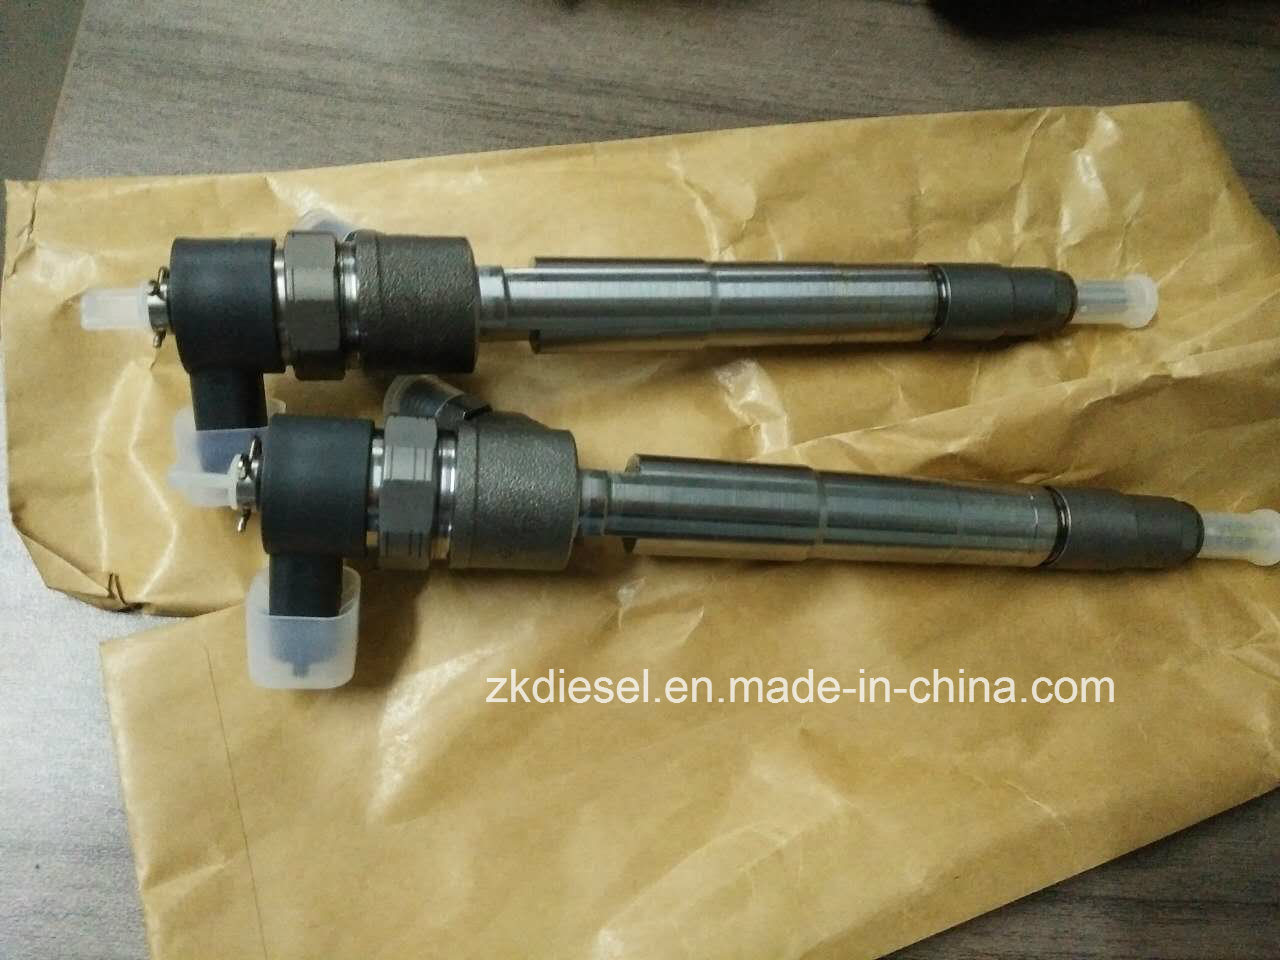 Original/OEM High Quality Diesel Engine Parts Cummins Isf2.8 Bosch Injector 0445110376 0445110594